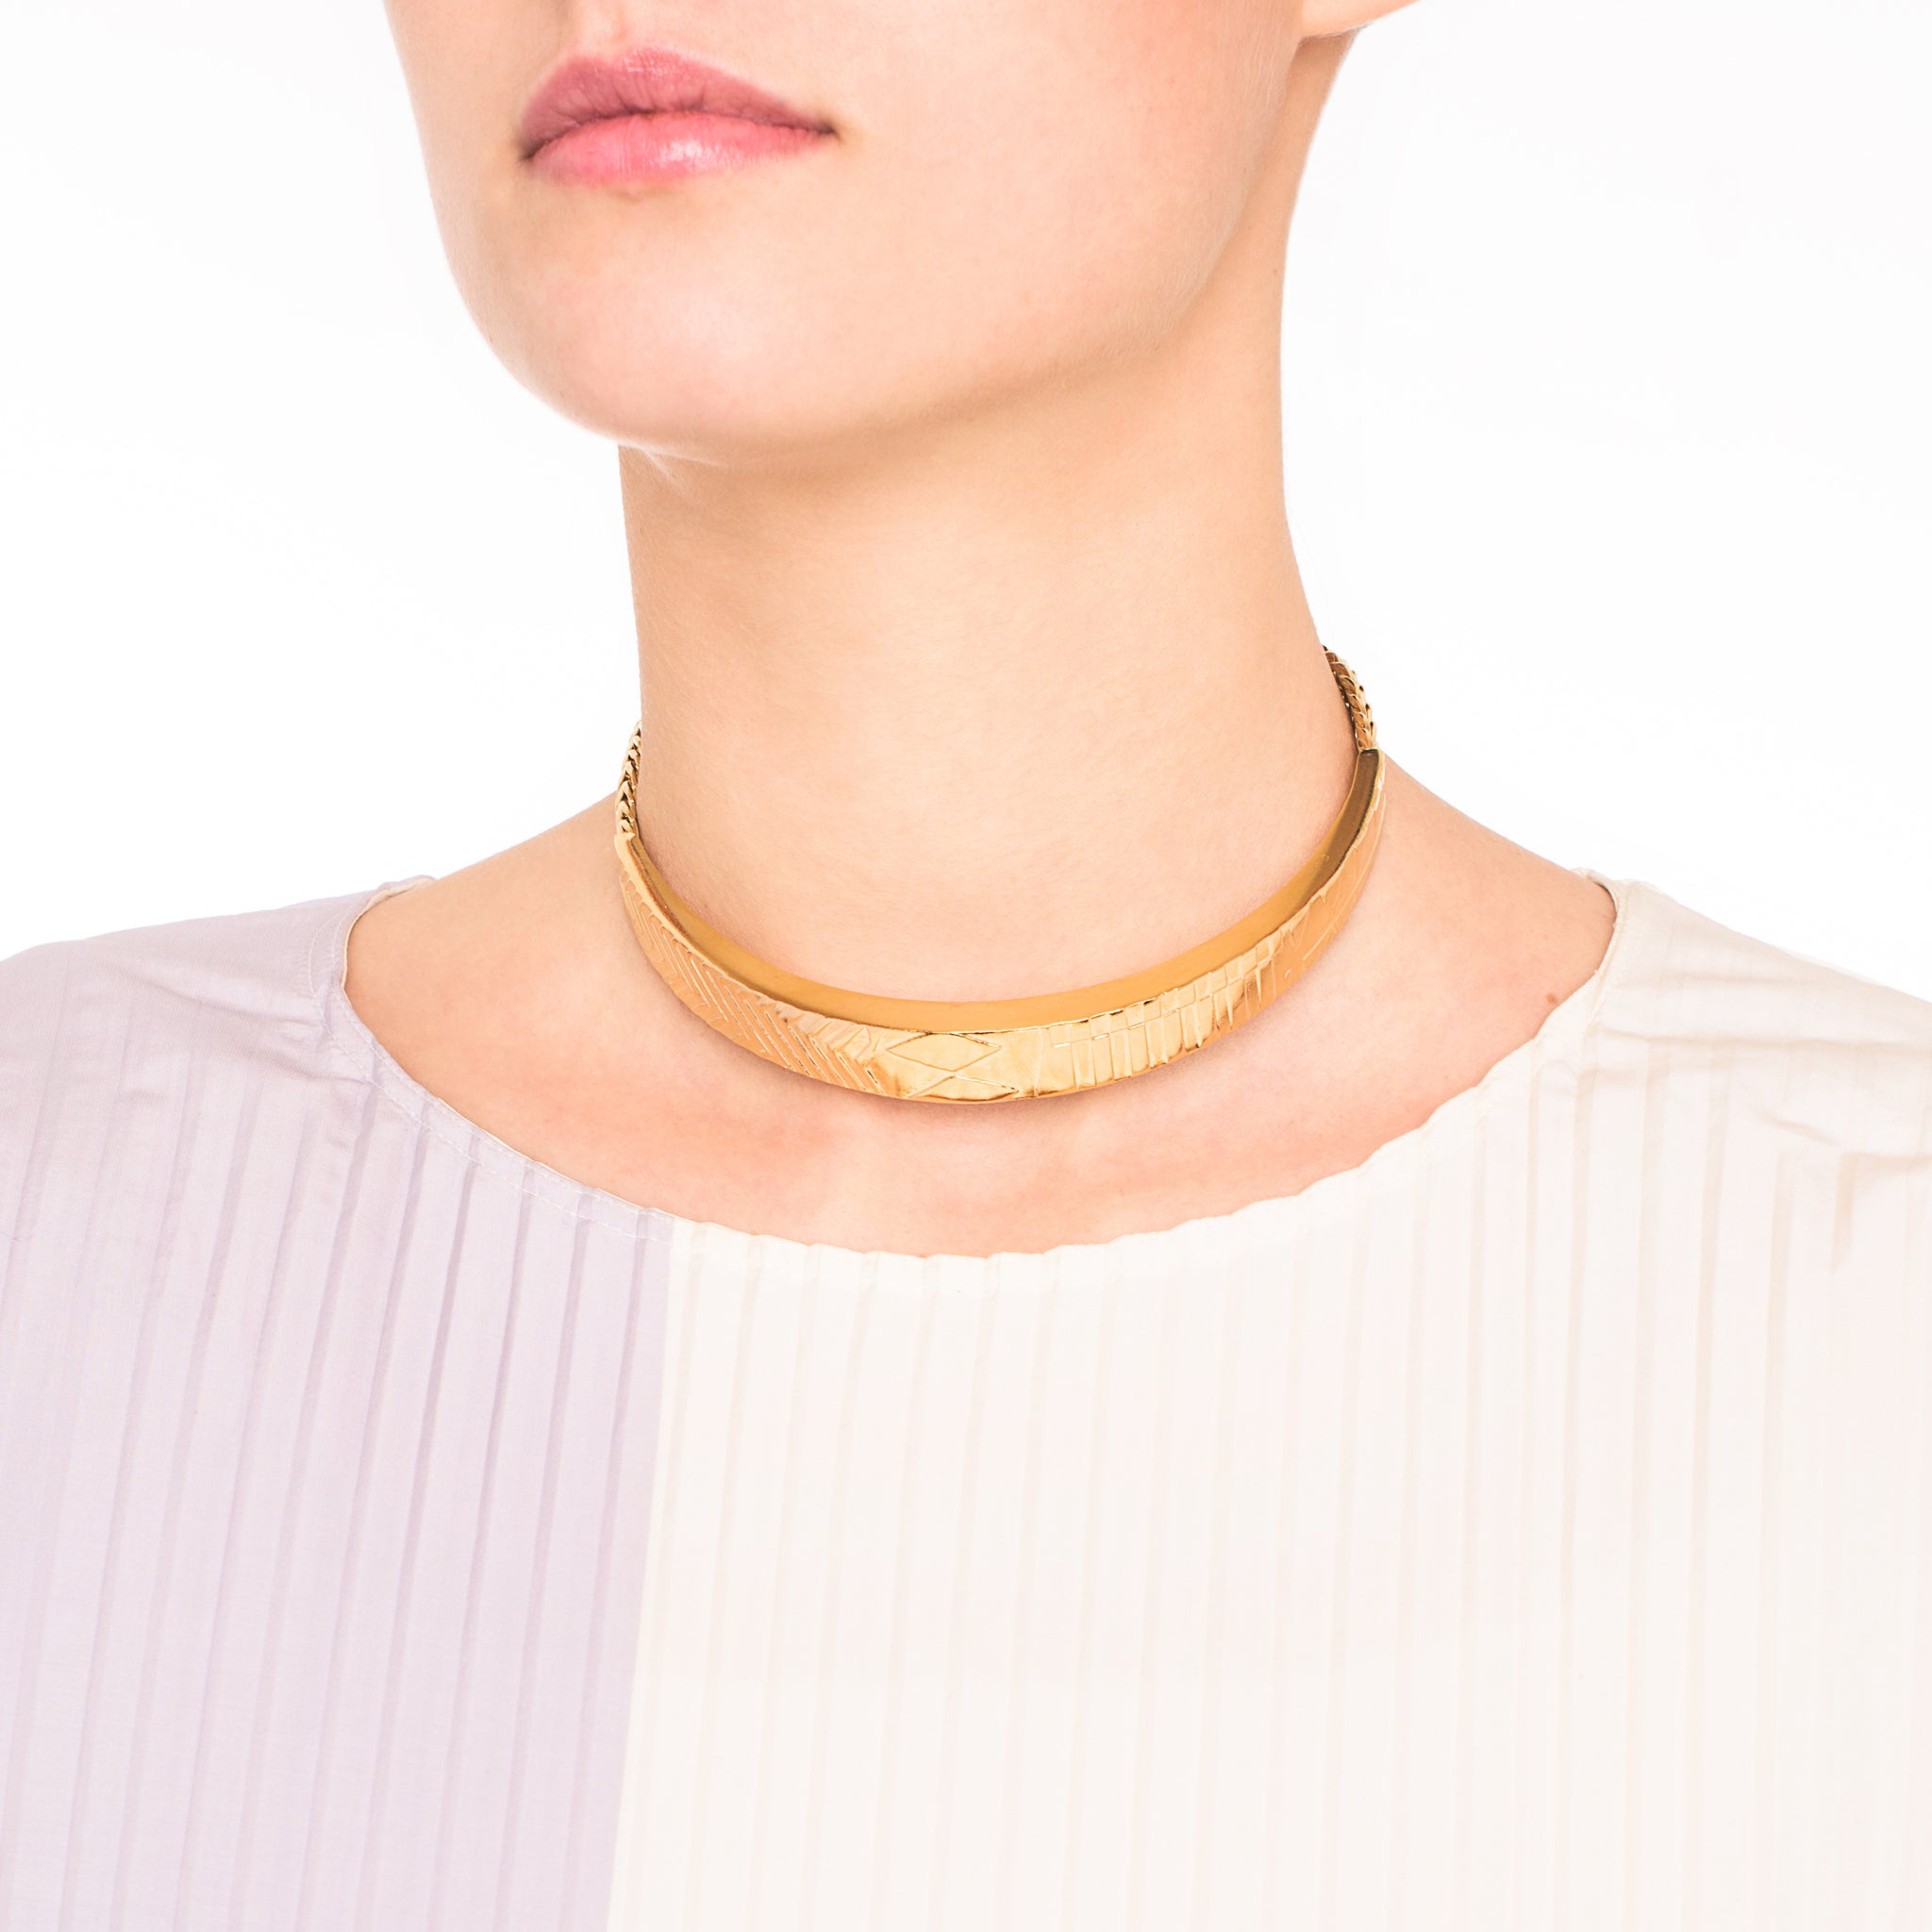 Etched Statement Choker with Chains and clasp